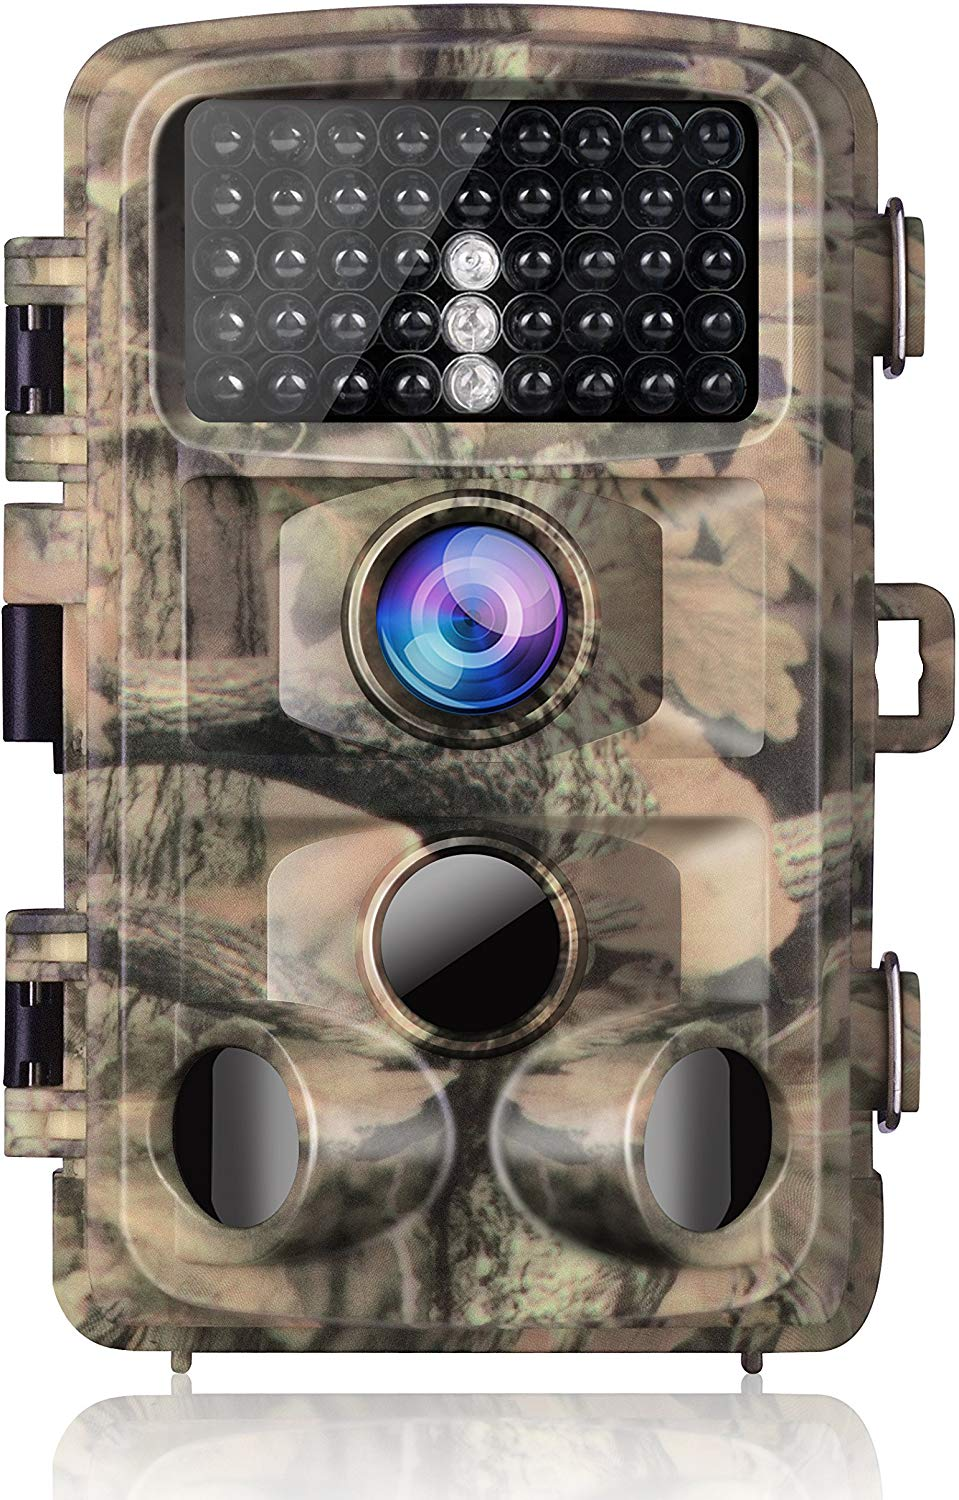 Campark Trail Game Camera